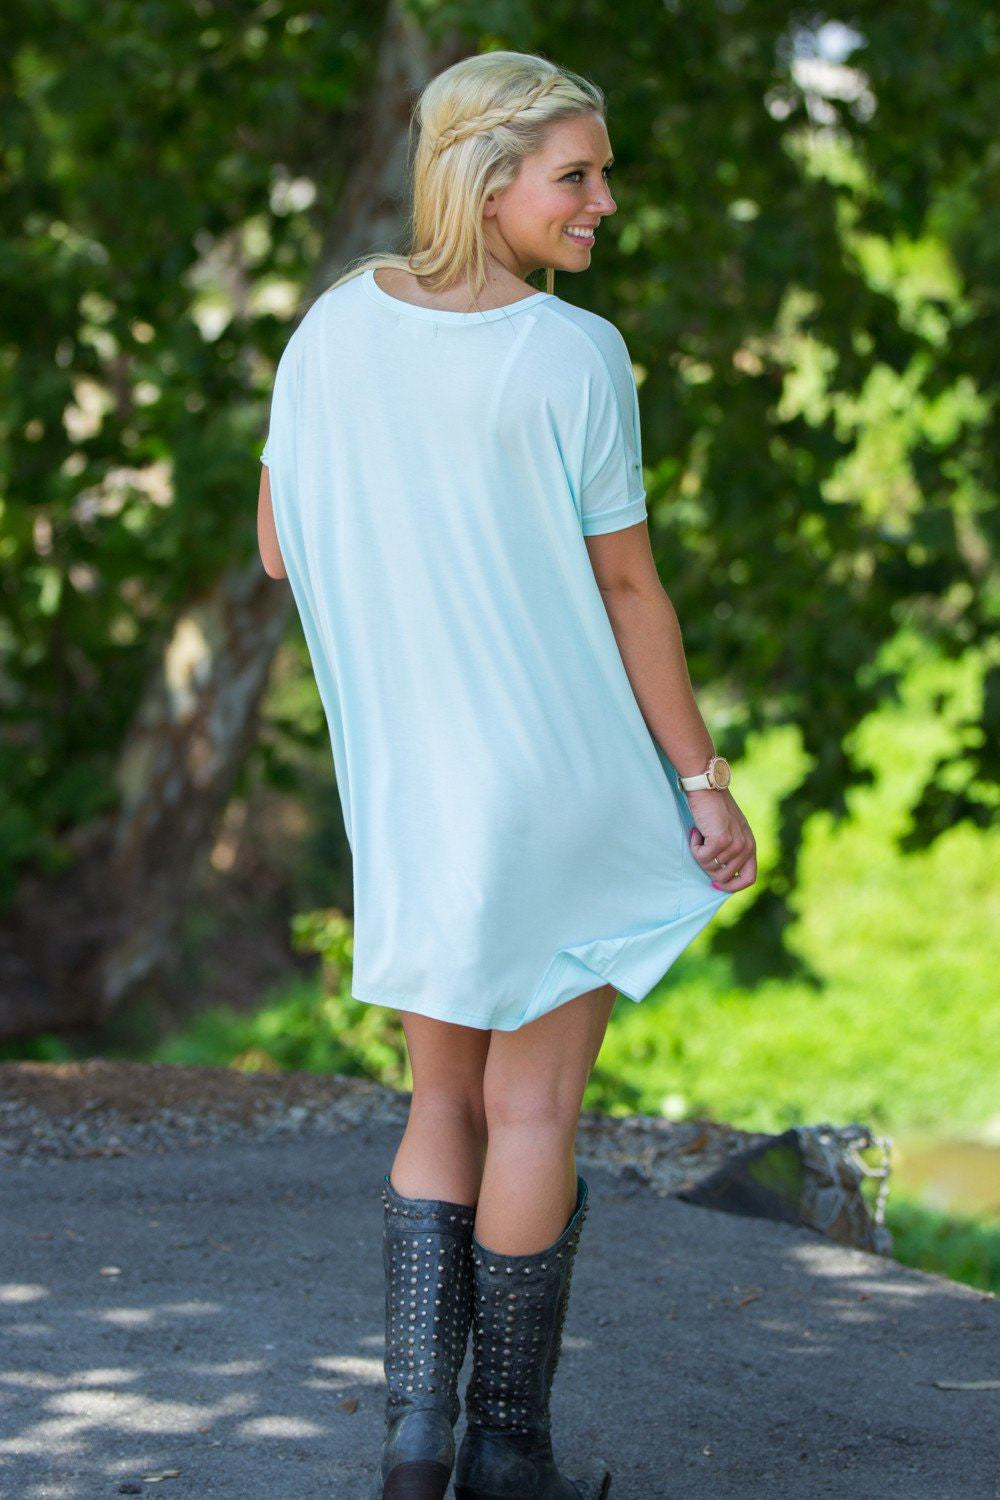 Short Sleeve V-Neck Piko Tunic - Mint - Piko Clothing - 2